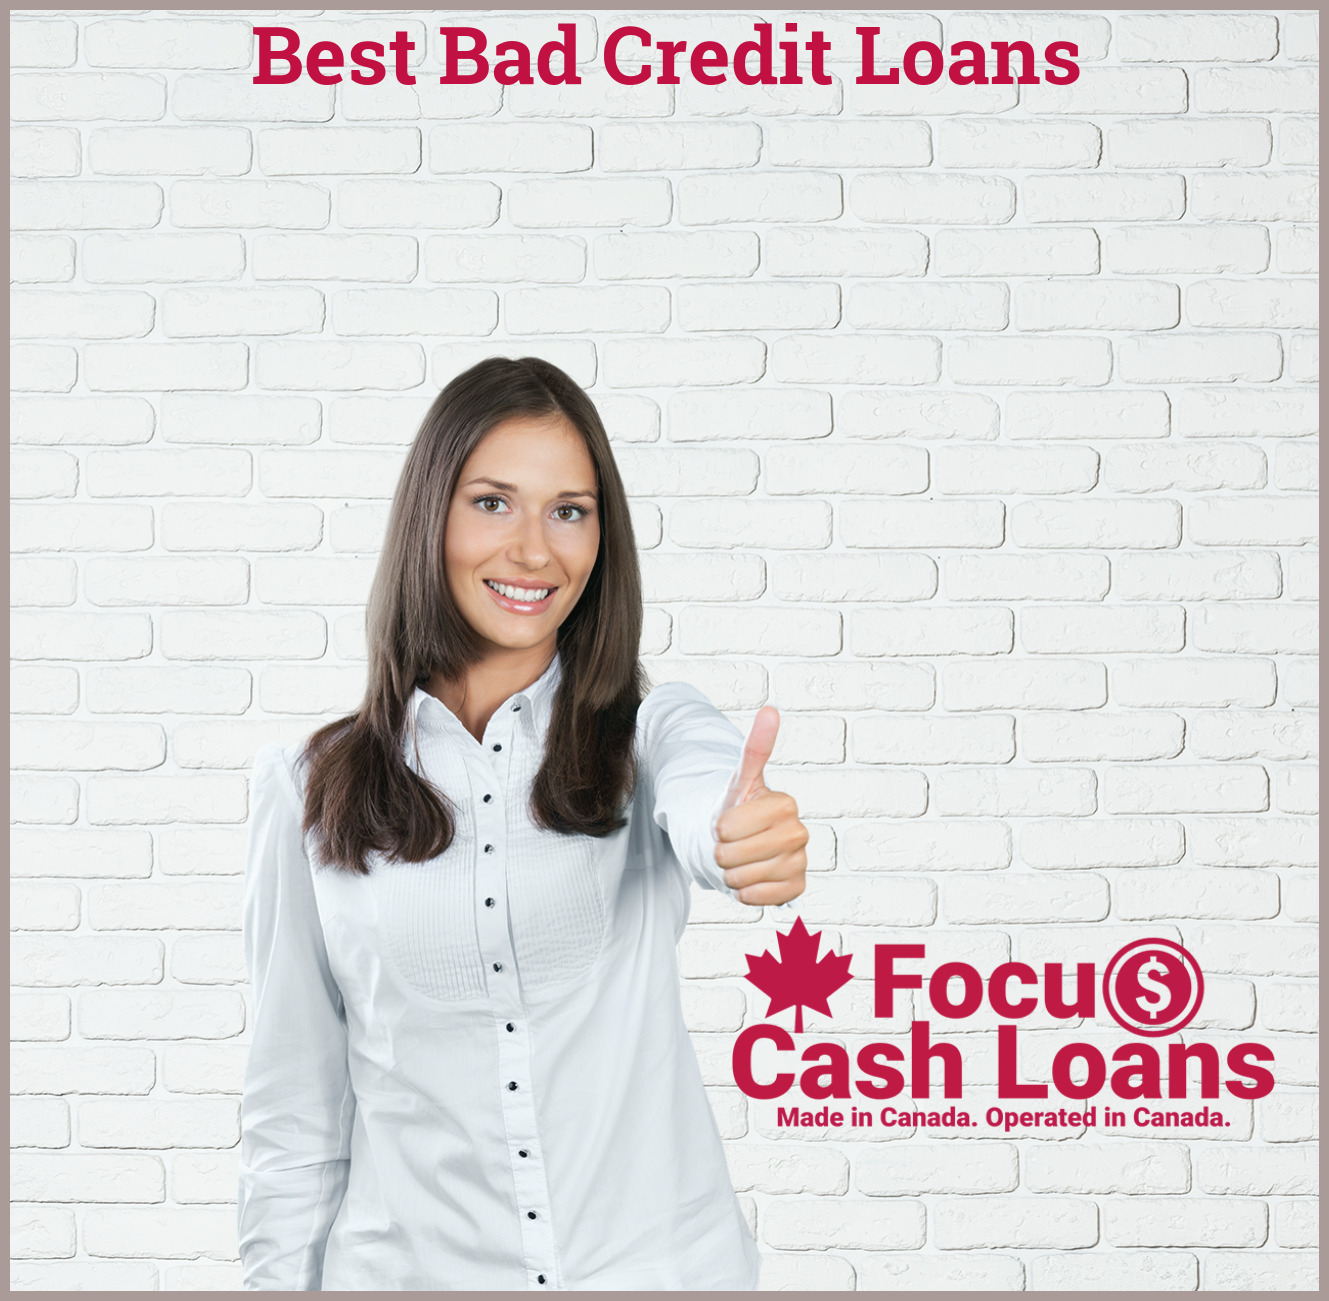 Internet loans for people with bad credit are easier to access as long as you have the internet and you know where to look.